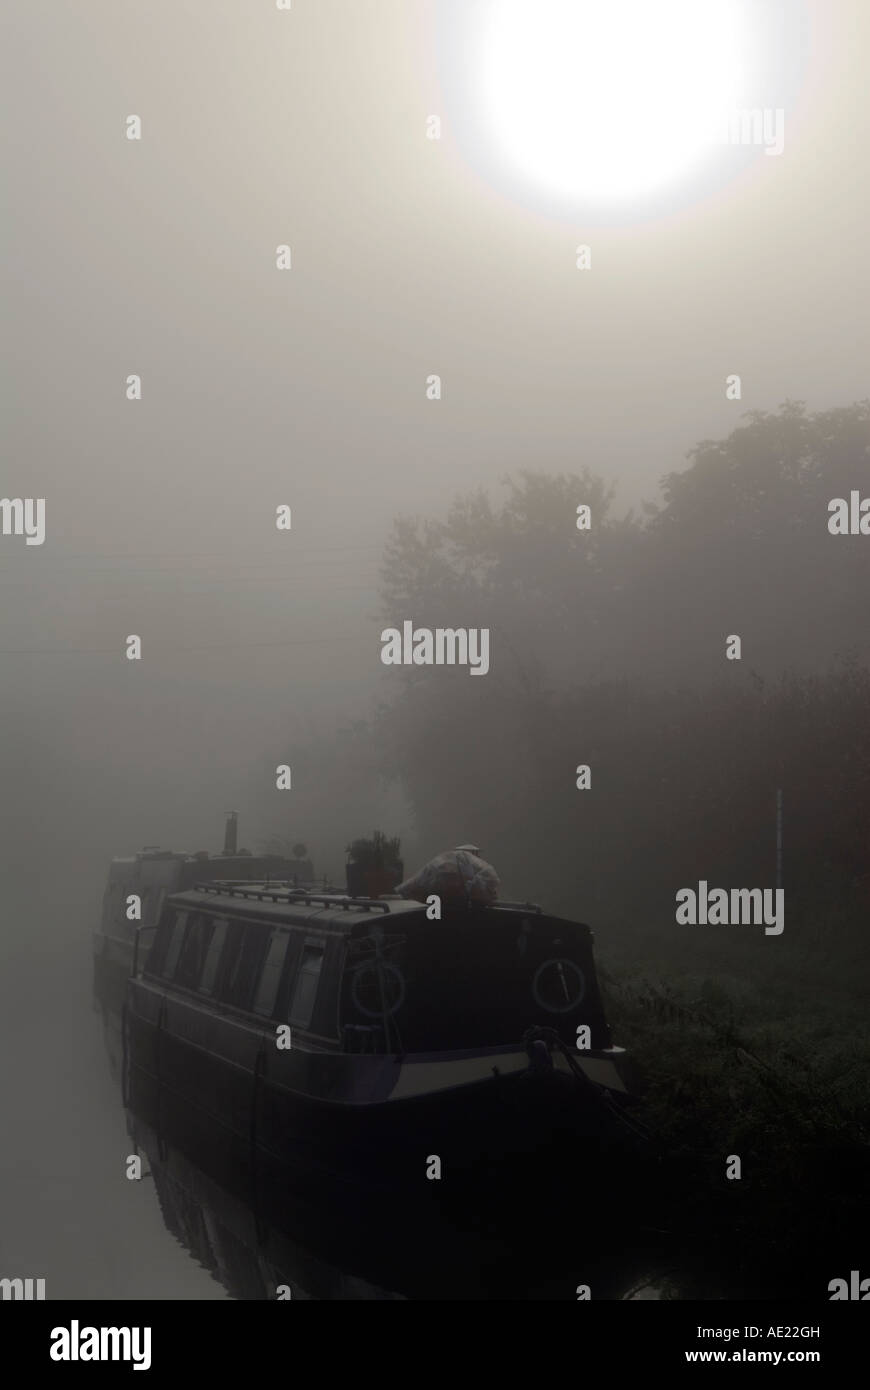 PICTURE CREDIT Doug Blane Moored narrowboat on a misty moring on the kennet and avon canal Stock Photo